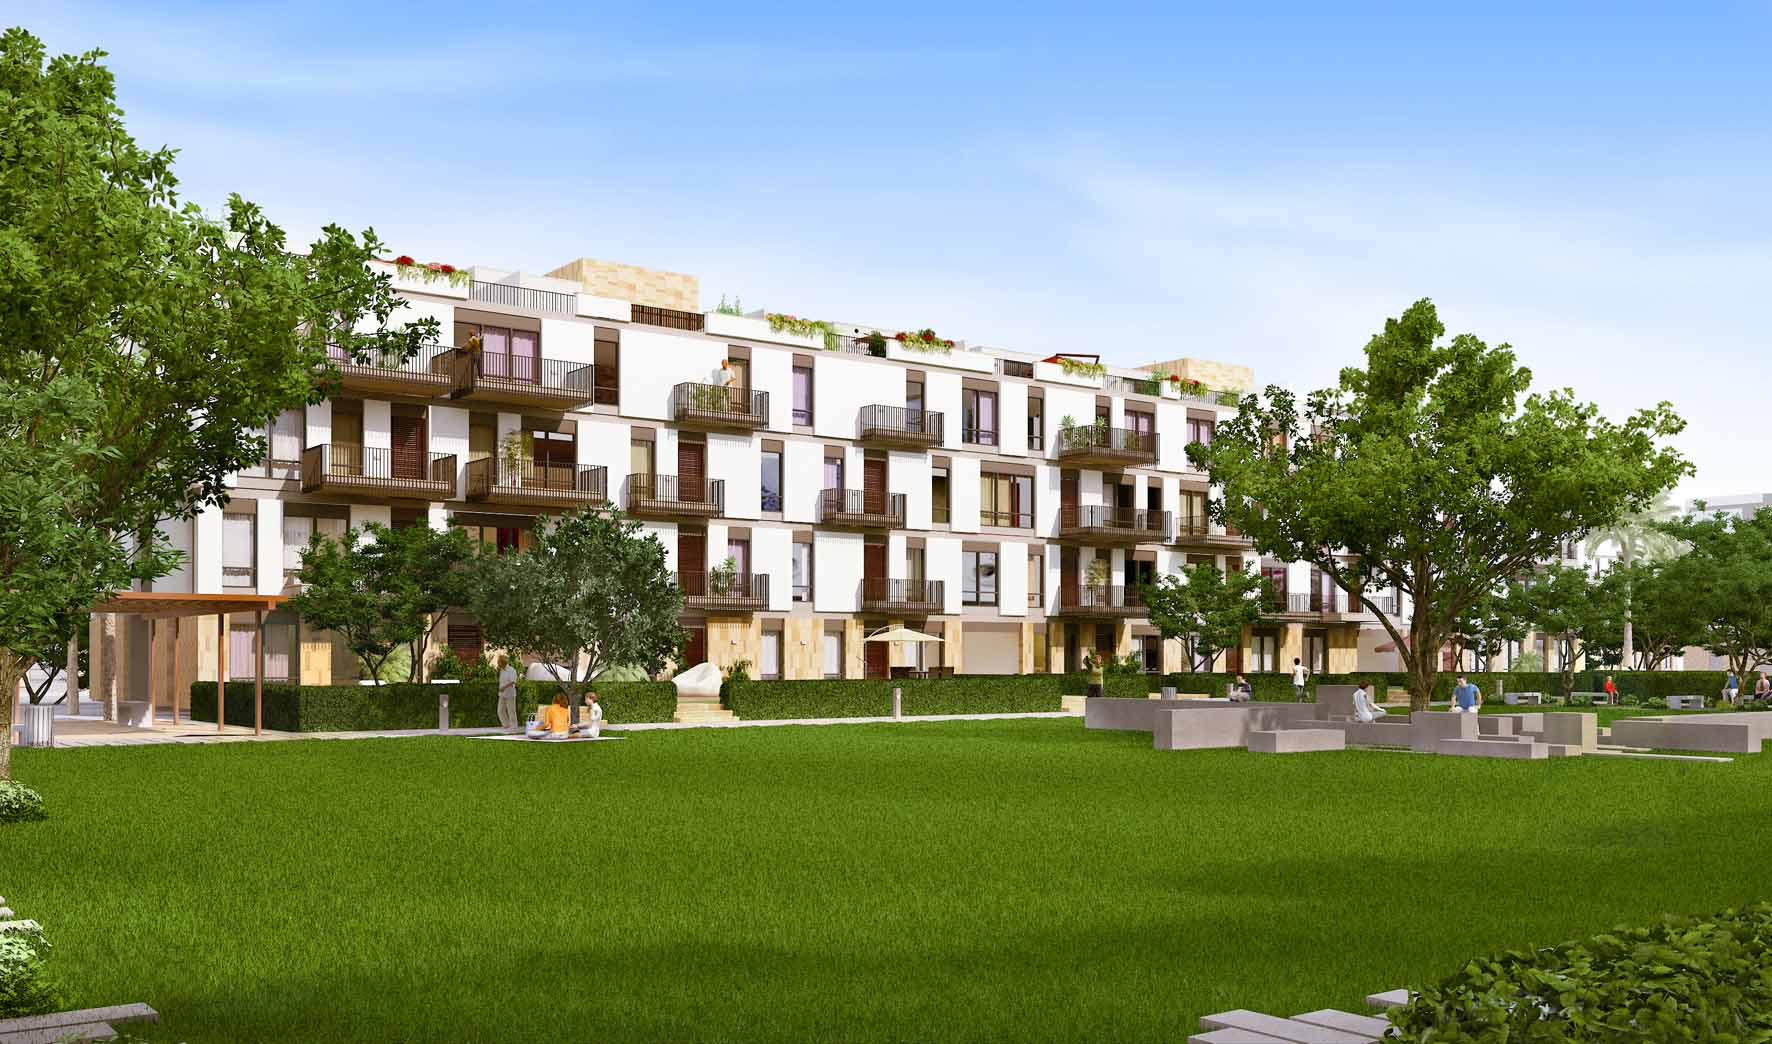 494-apartment-3-bedrooms-family-living